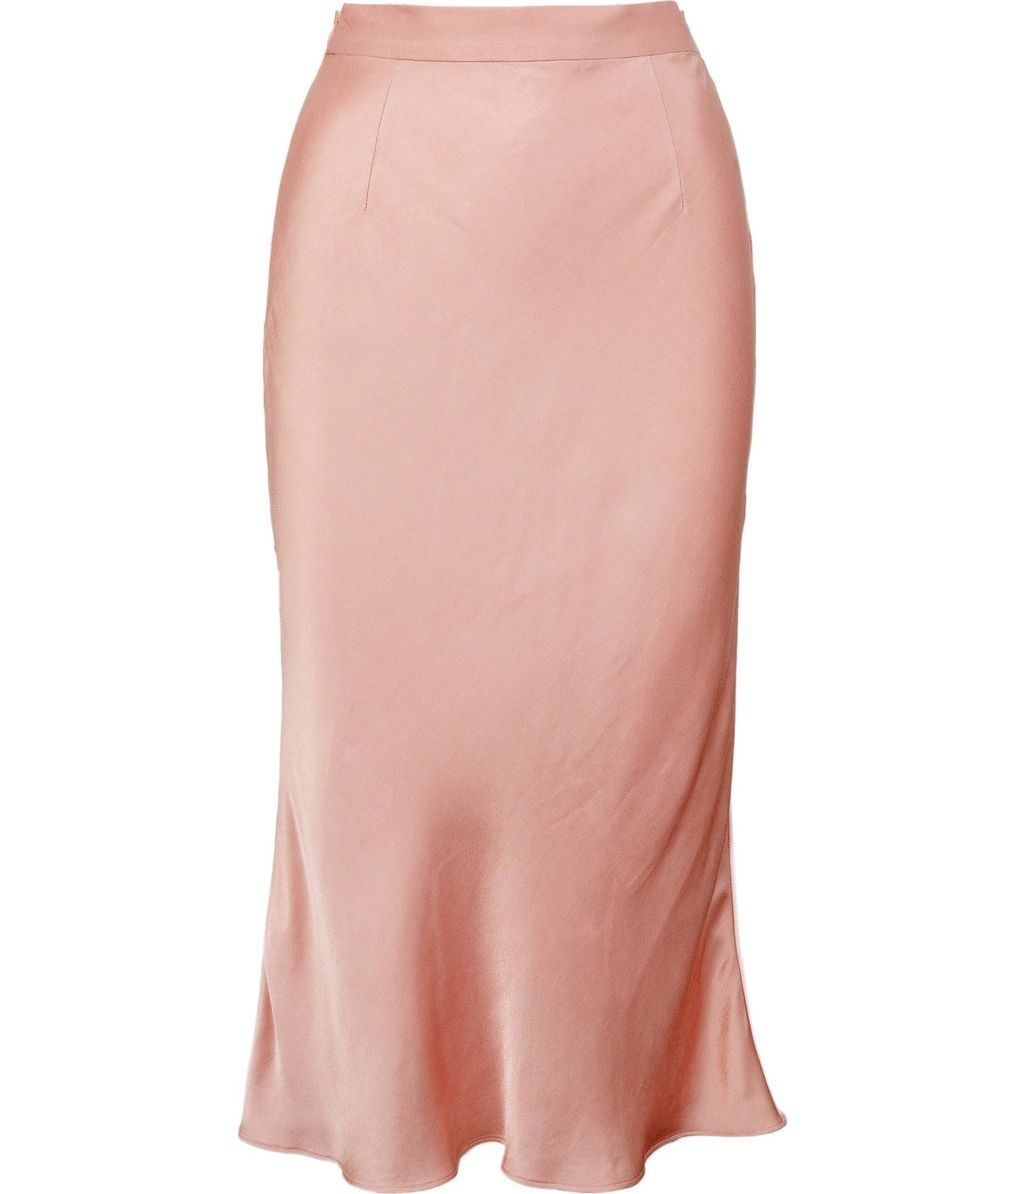 Peachy Pearl Skirt by J.ING women's clothing